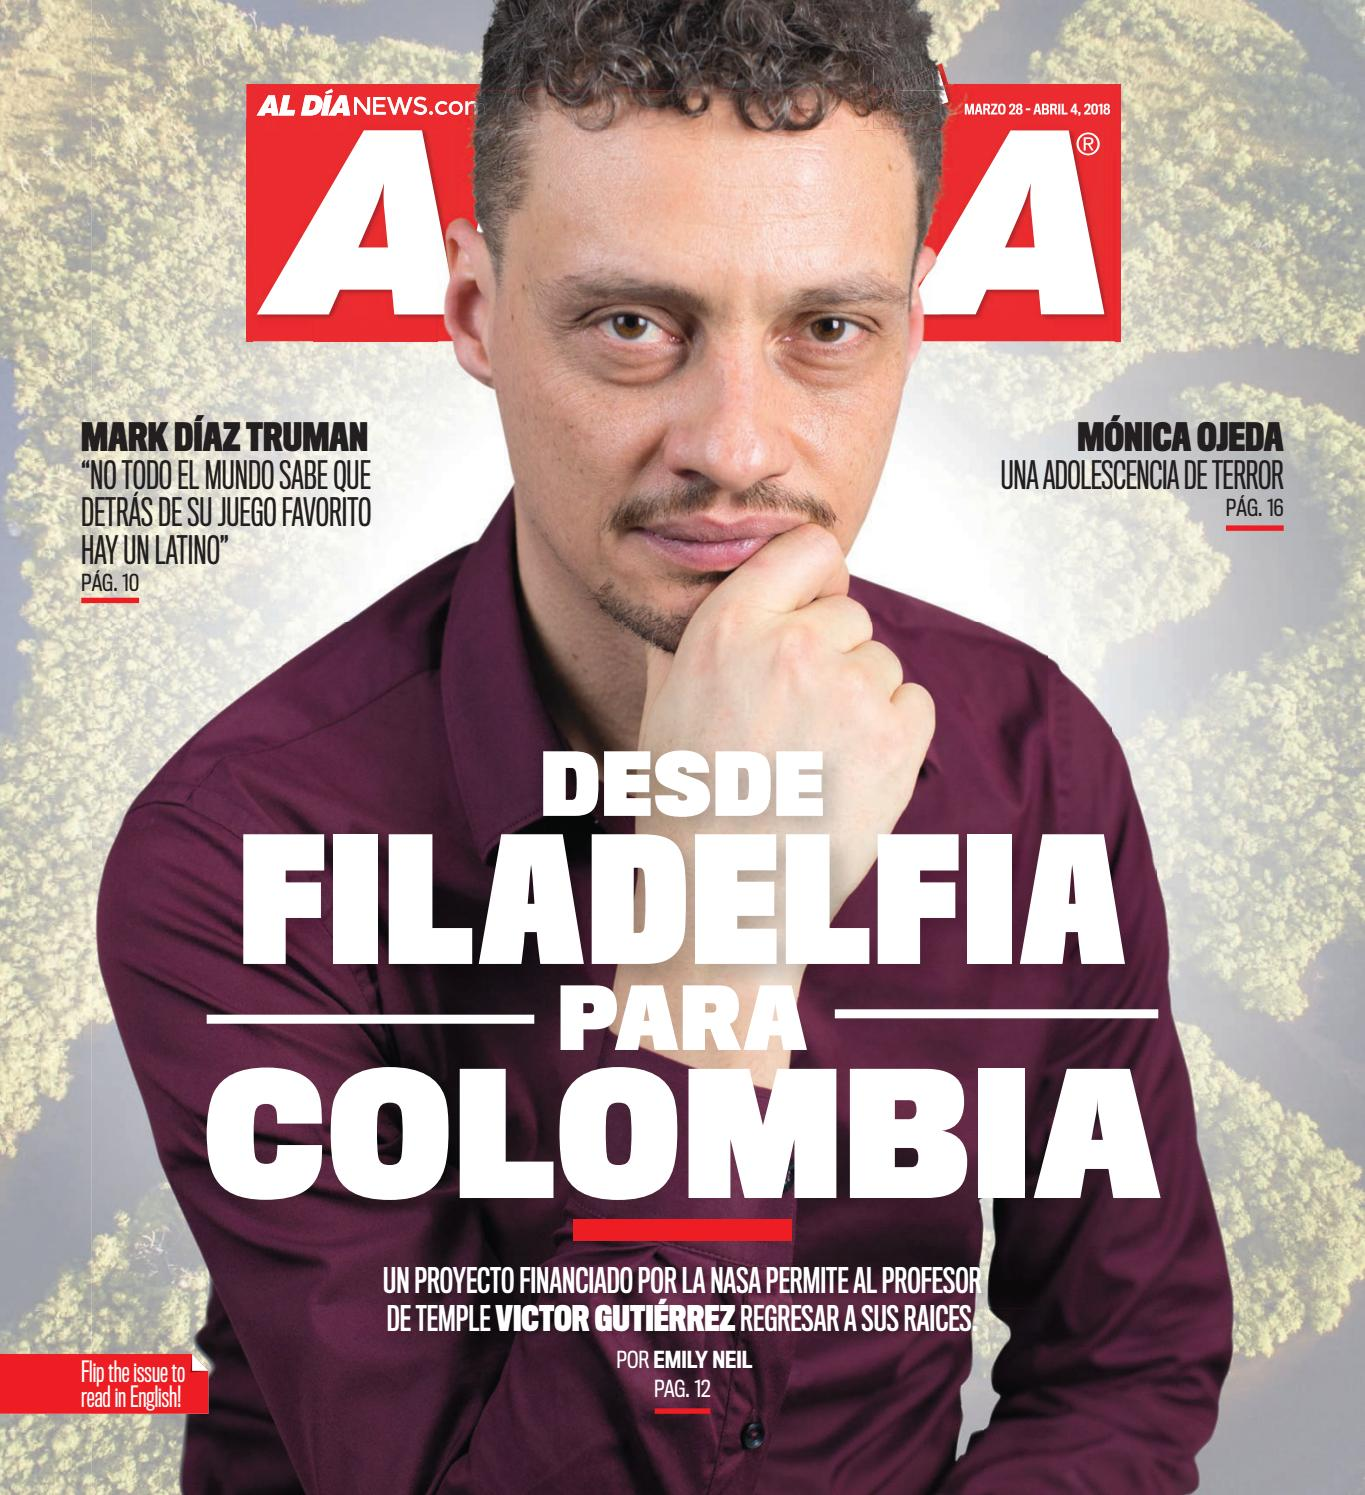 AL DÍA NEWS March 28 - April 4, 2018 by AL DÍA NEWS - issuu